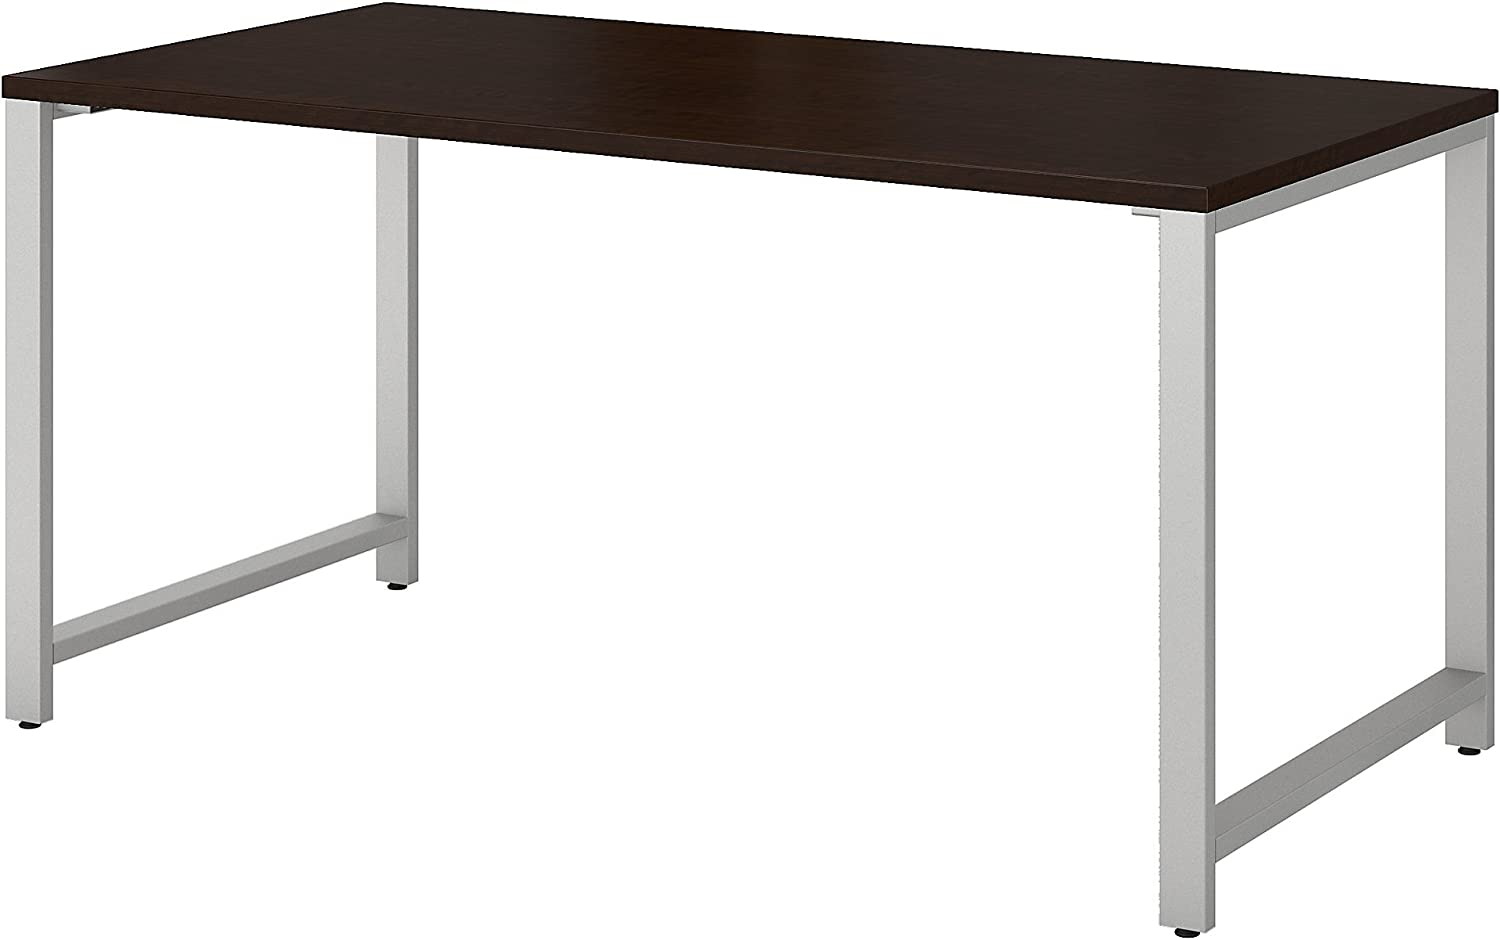 Bush Business Furniture 400 Series Table Desk with Metal Legs, 60W x 30D, Mocha Cherry